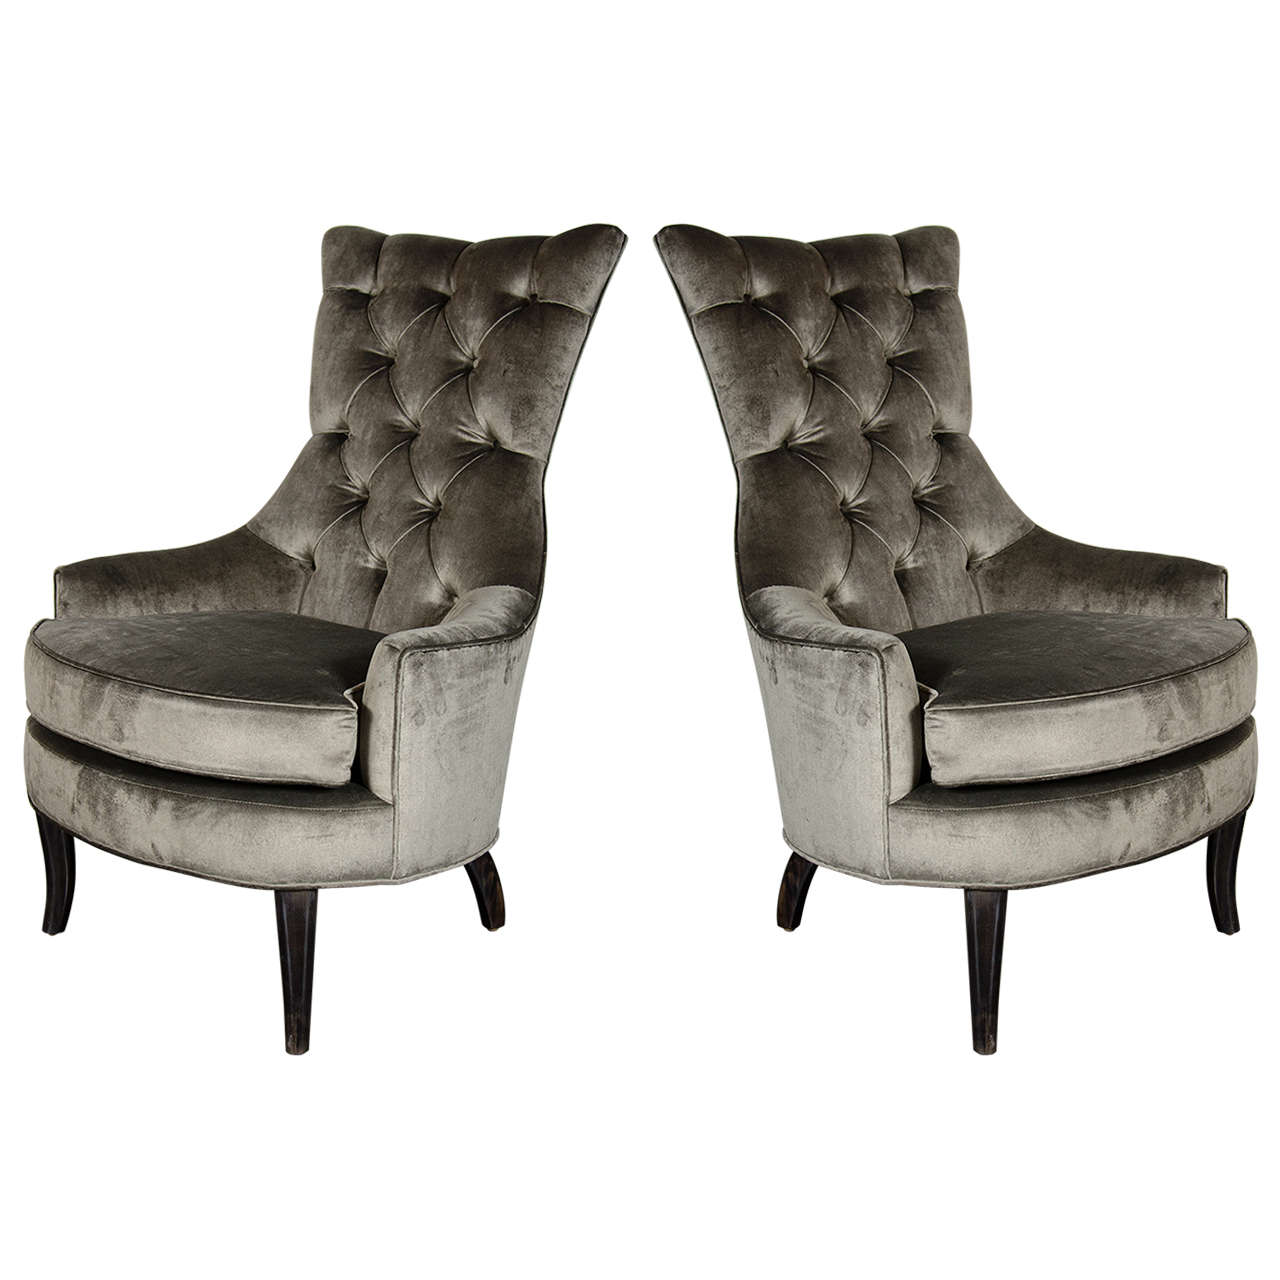 Pair of Mid-Century Modern Tufted High-Back Chairs in Smoked Platinum Velvet